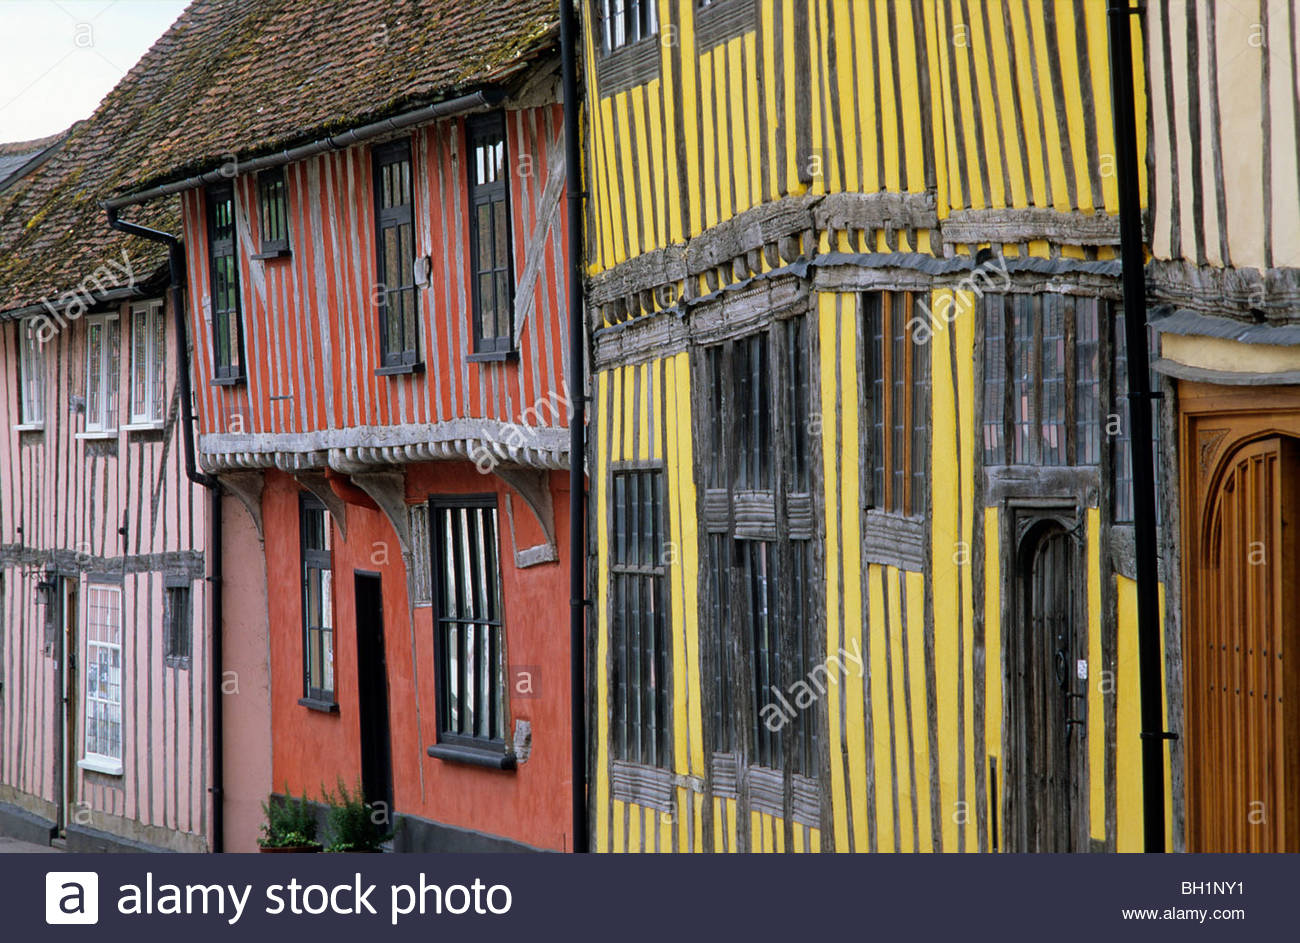 Europe, England, Suffolk, Lavenham, East Anglia, half timbered houses - Stock Image